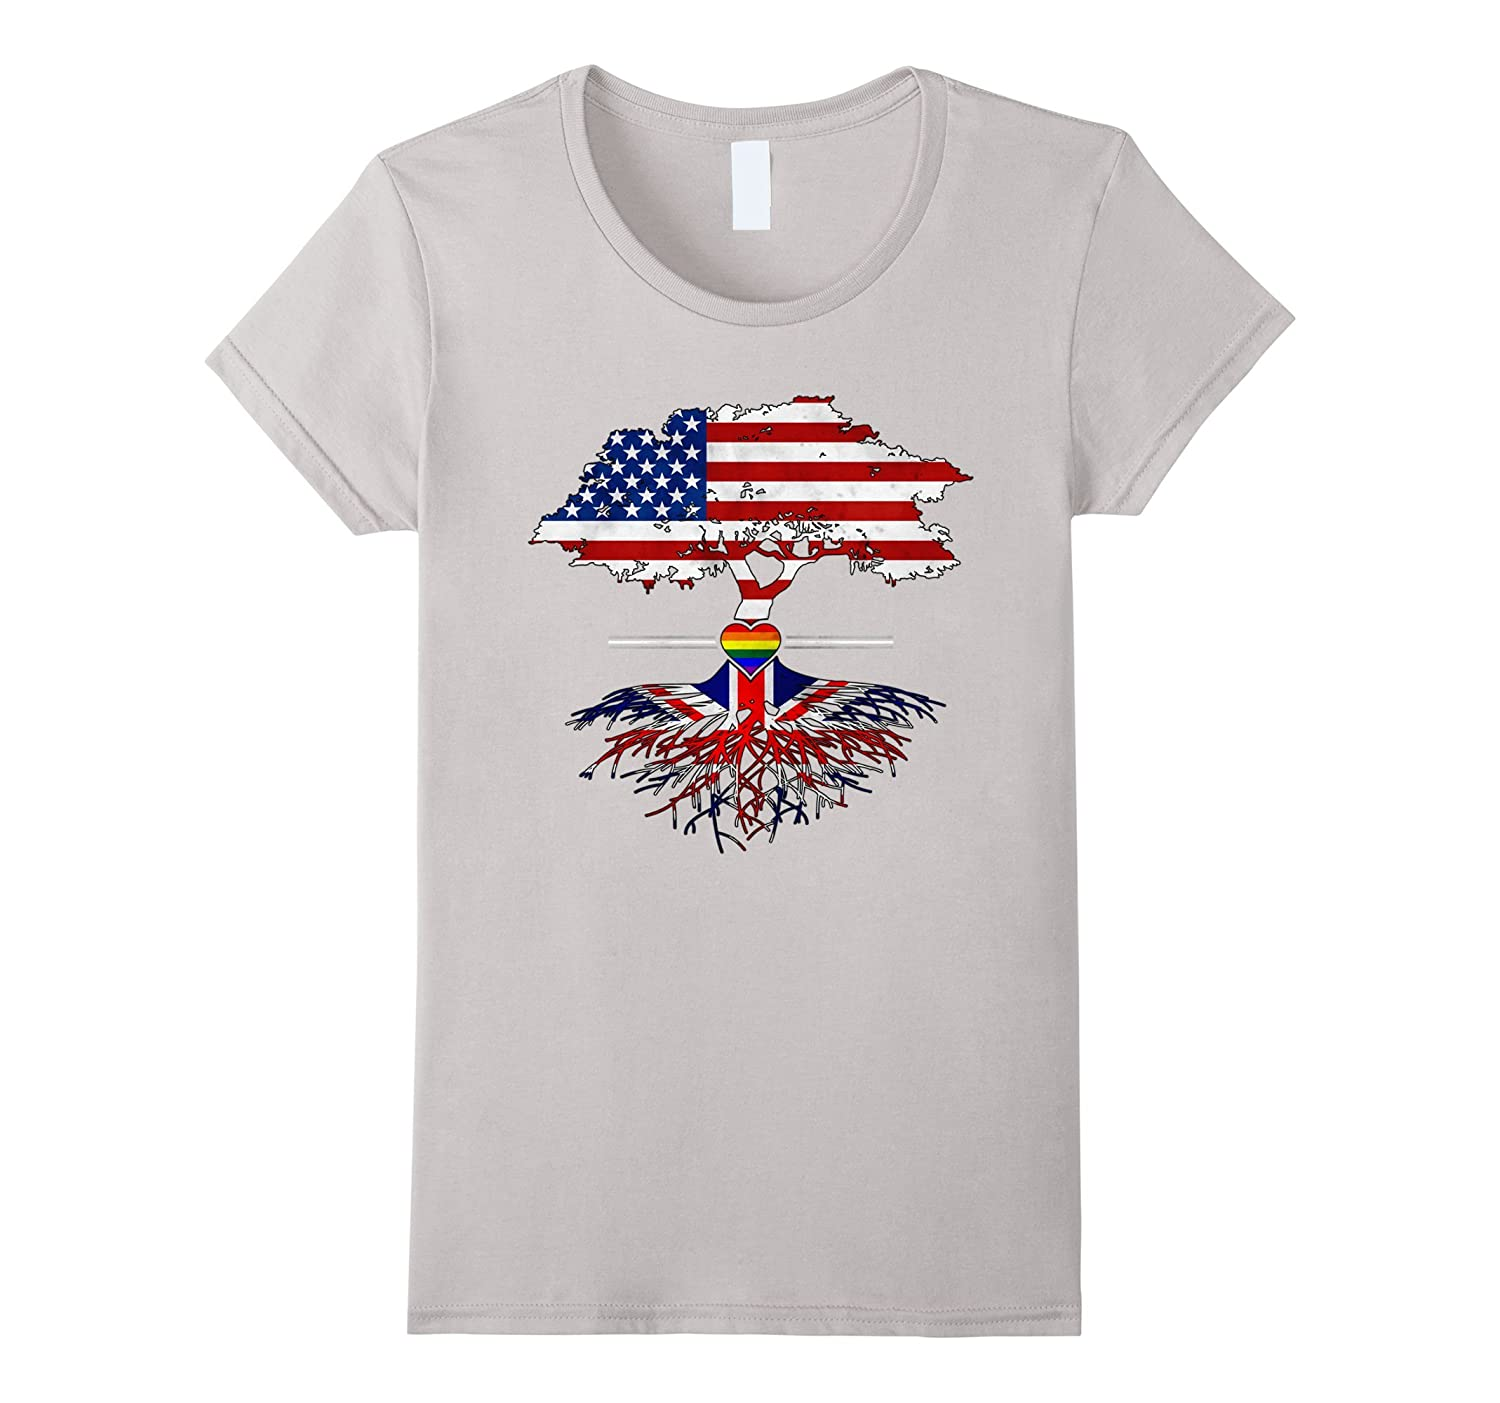 American Grown British Roots Gay Heart LGBT Pride T-Shirt